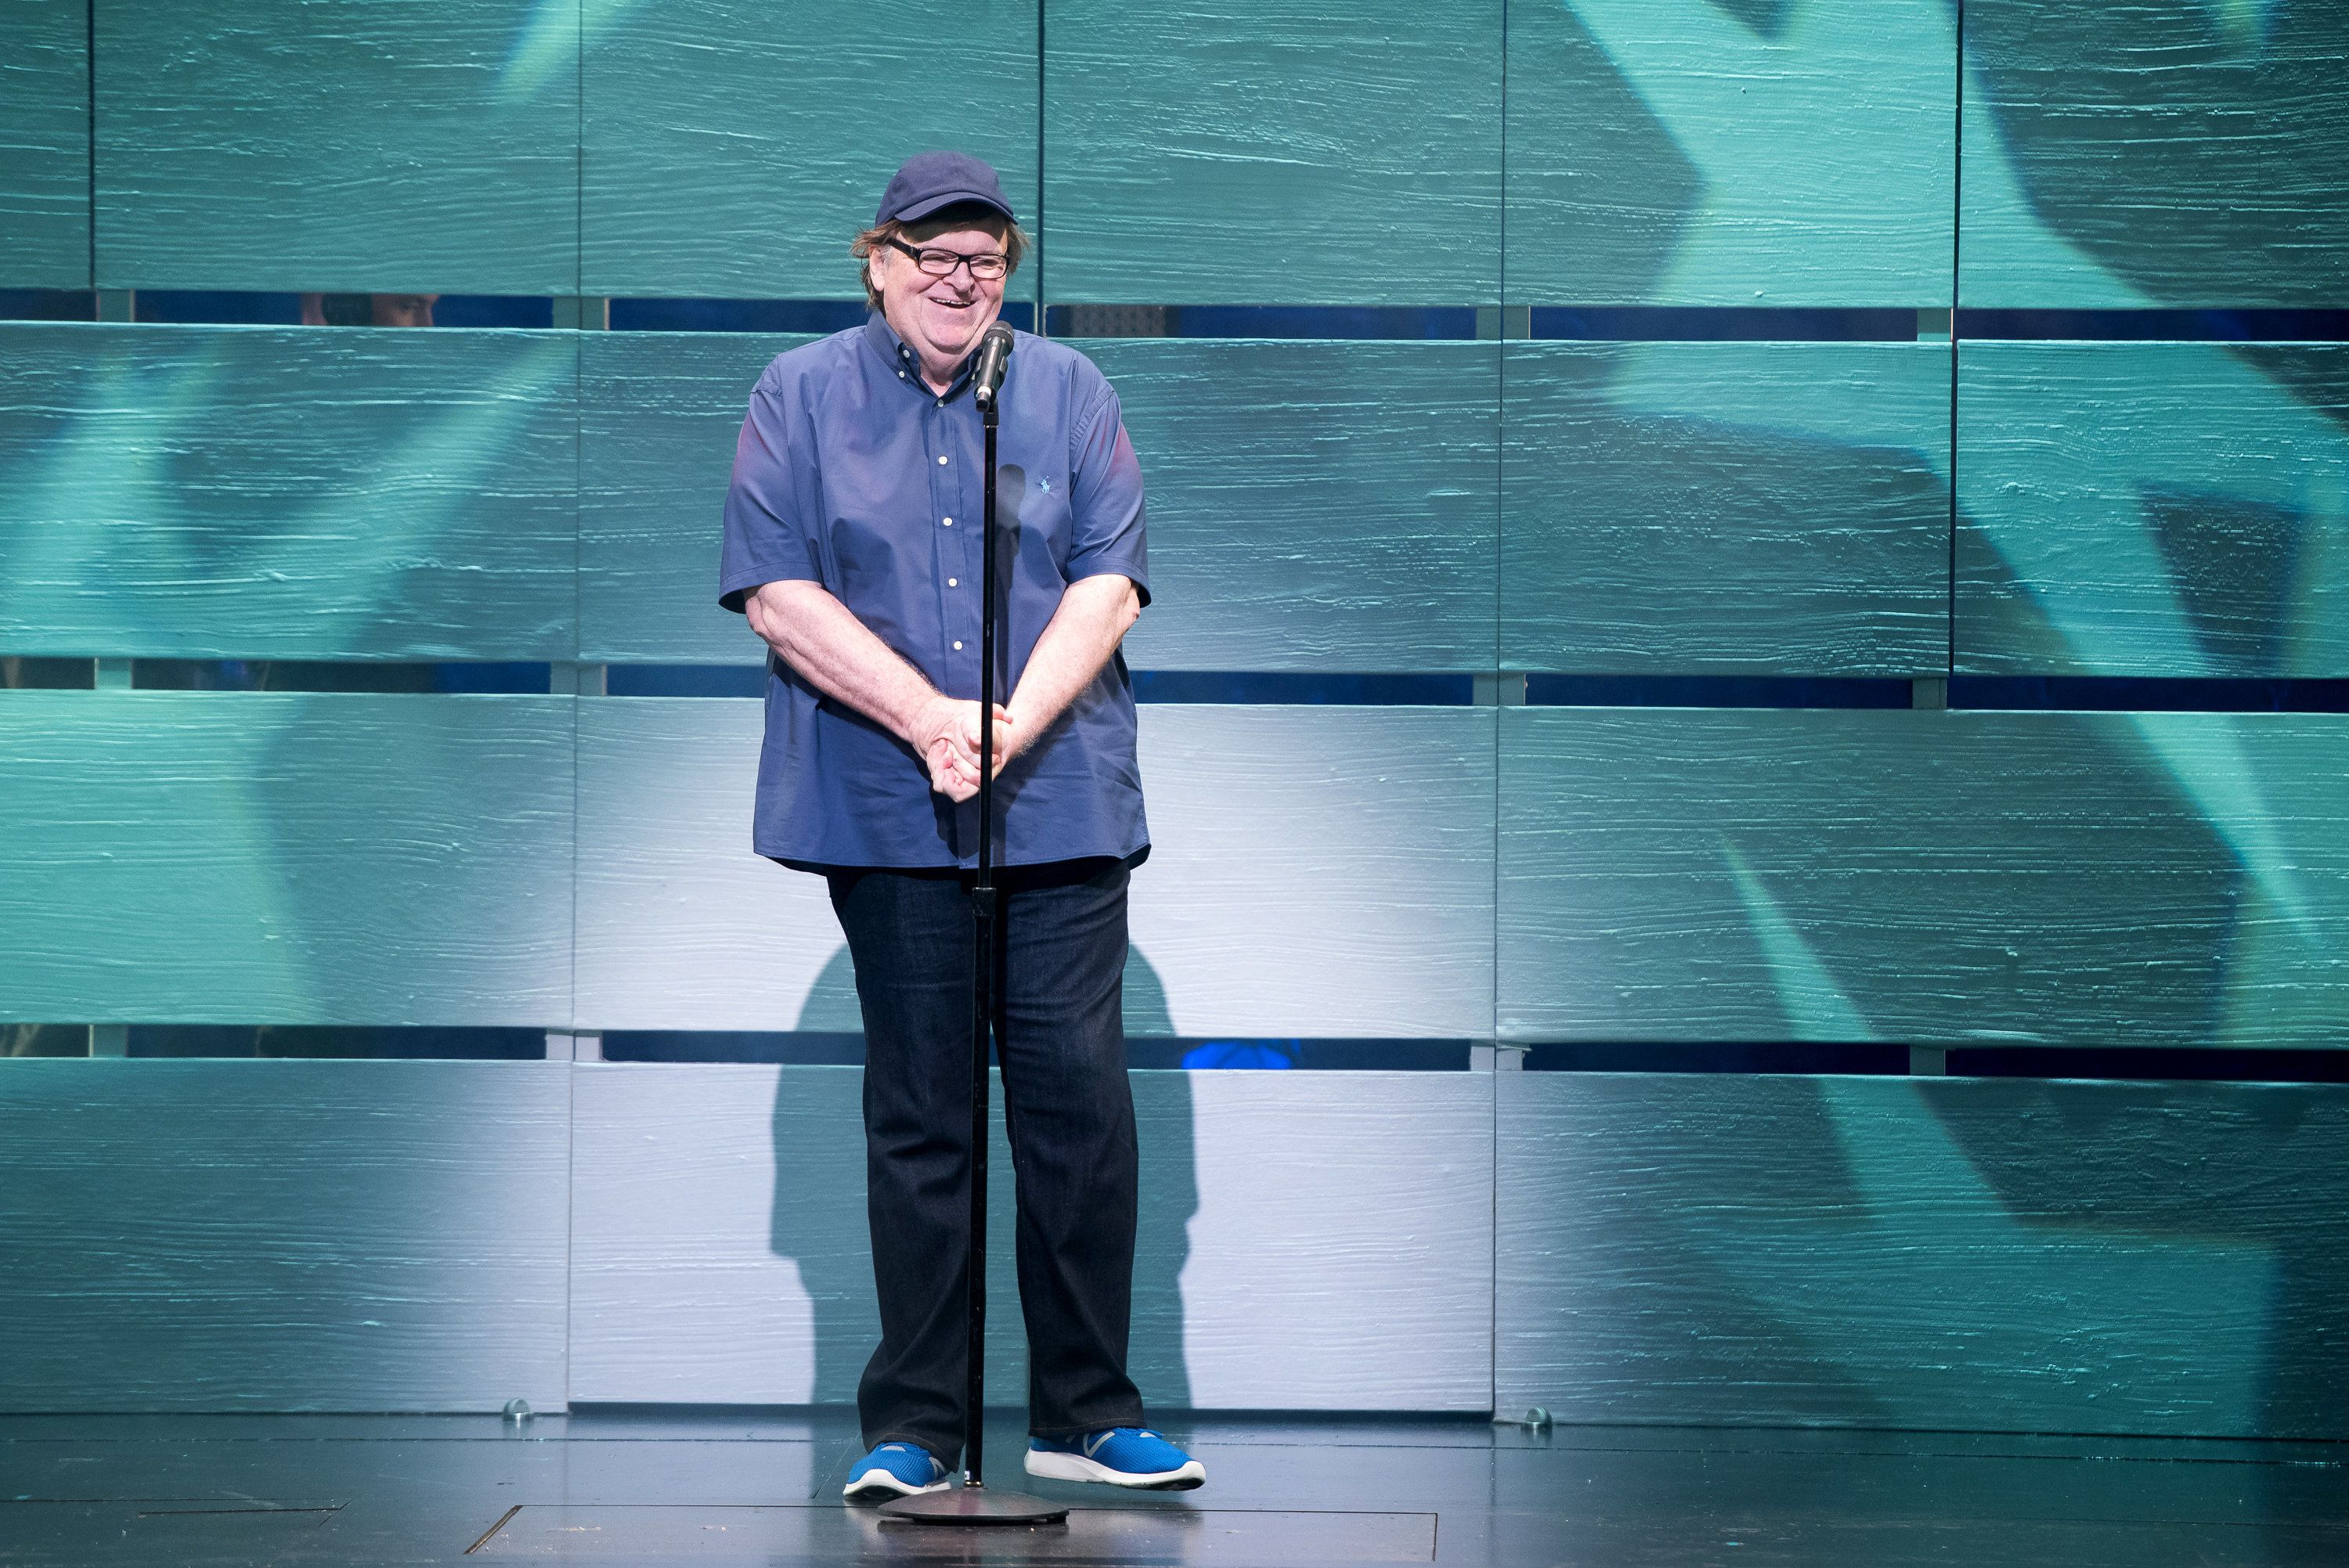 NEW YORK, NY - JULY 28:  Academy Award-winning filmmaker and political icon Michael Moore makes his broadway debut in 'The Terms of My Surrender' on July 28, 2017 in New York City.  (Photo by Mike Pont/Getty Images for DKC/O&M)